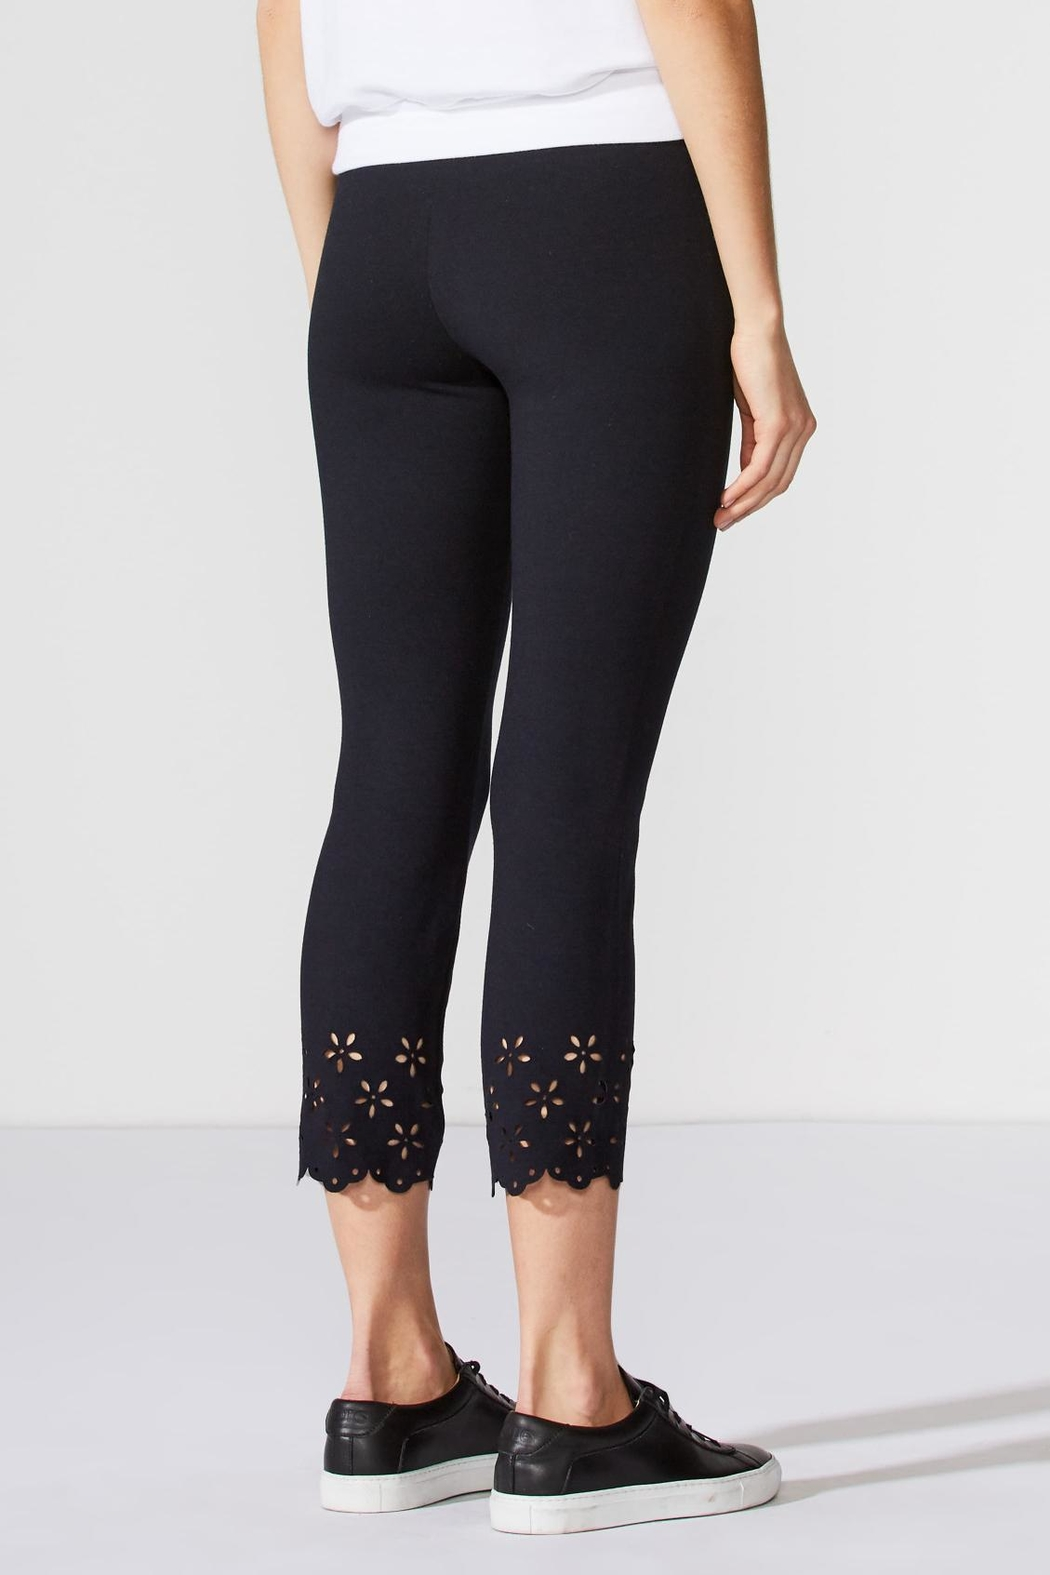 Bailey 44 Eyelet Ponte Pant - Side Cropped Image